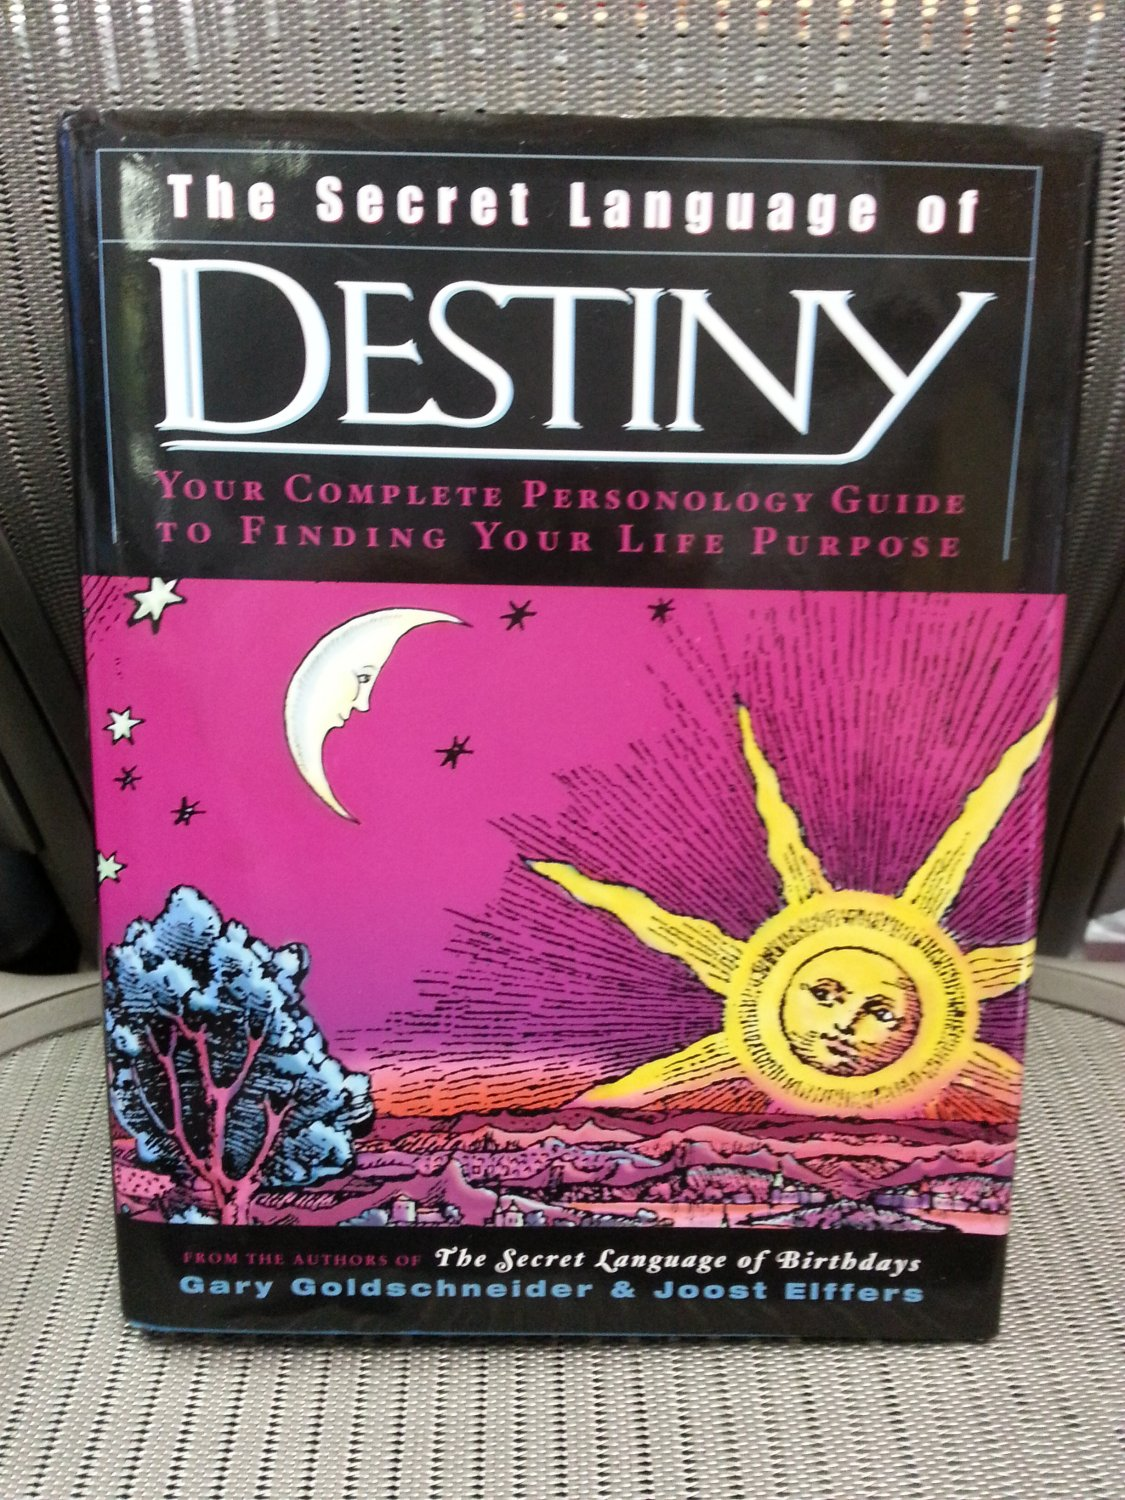 The Secret Language of Destiny: A Complete Personology Guide to Finding Your Life Purpose Book!